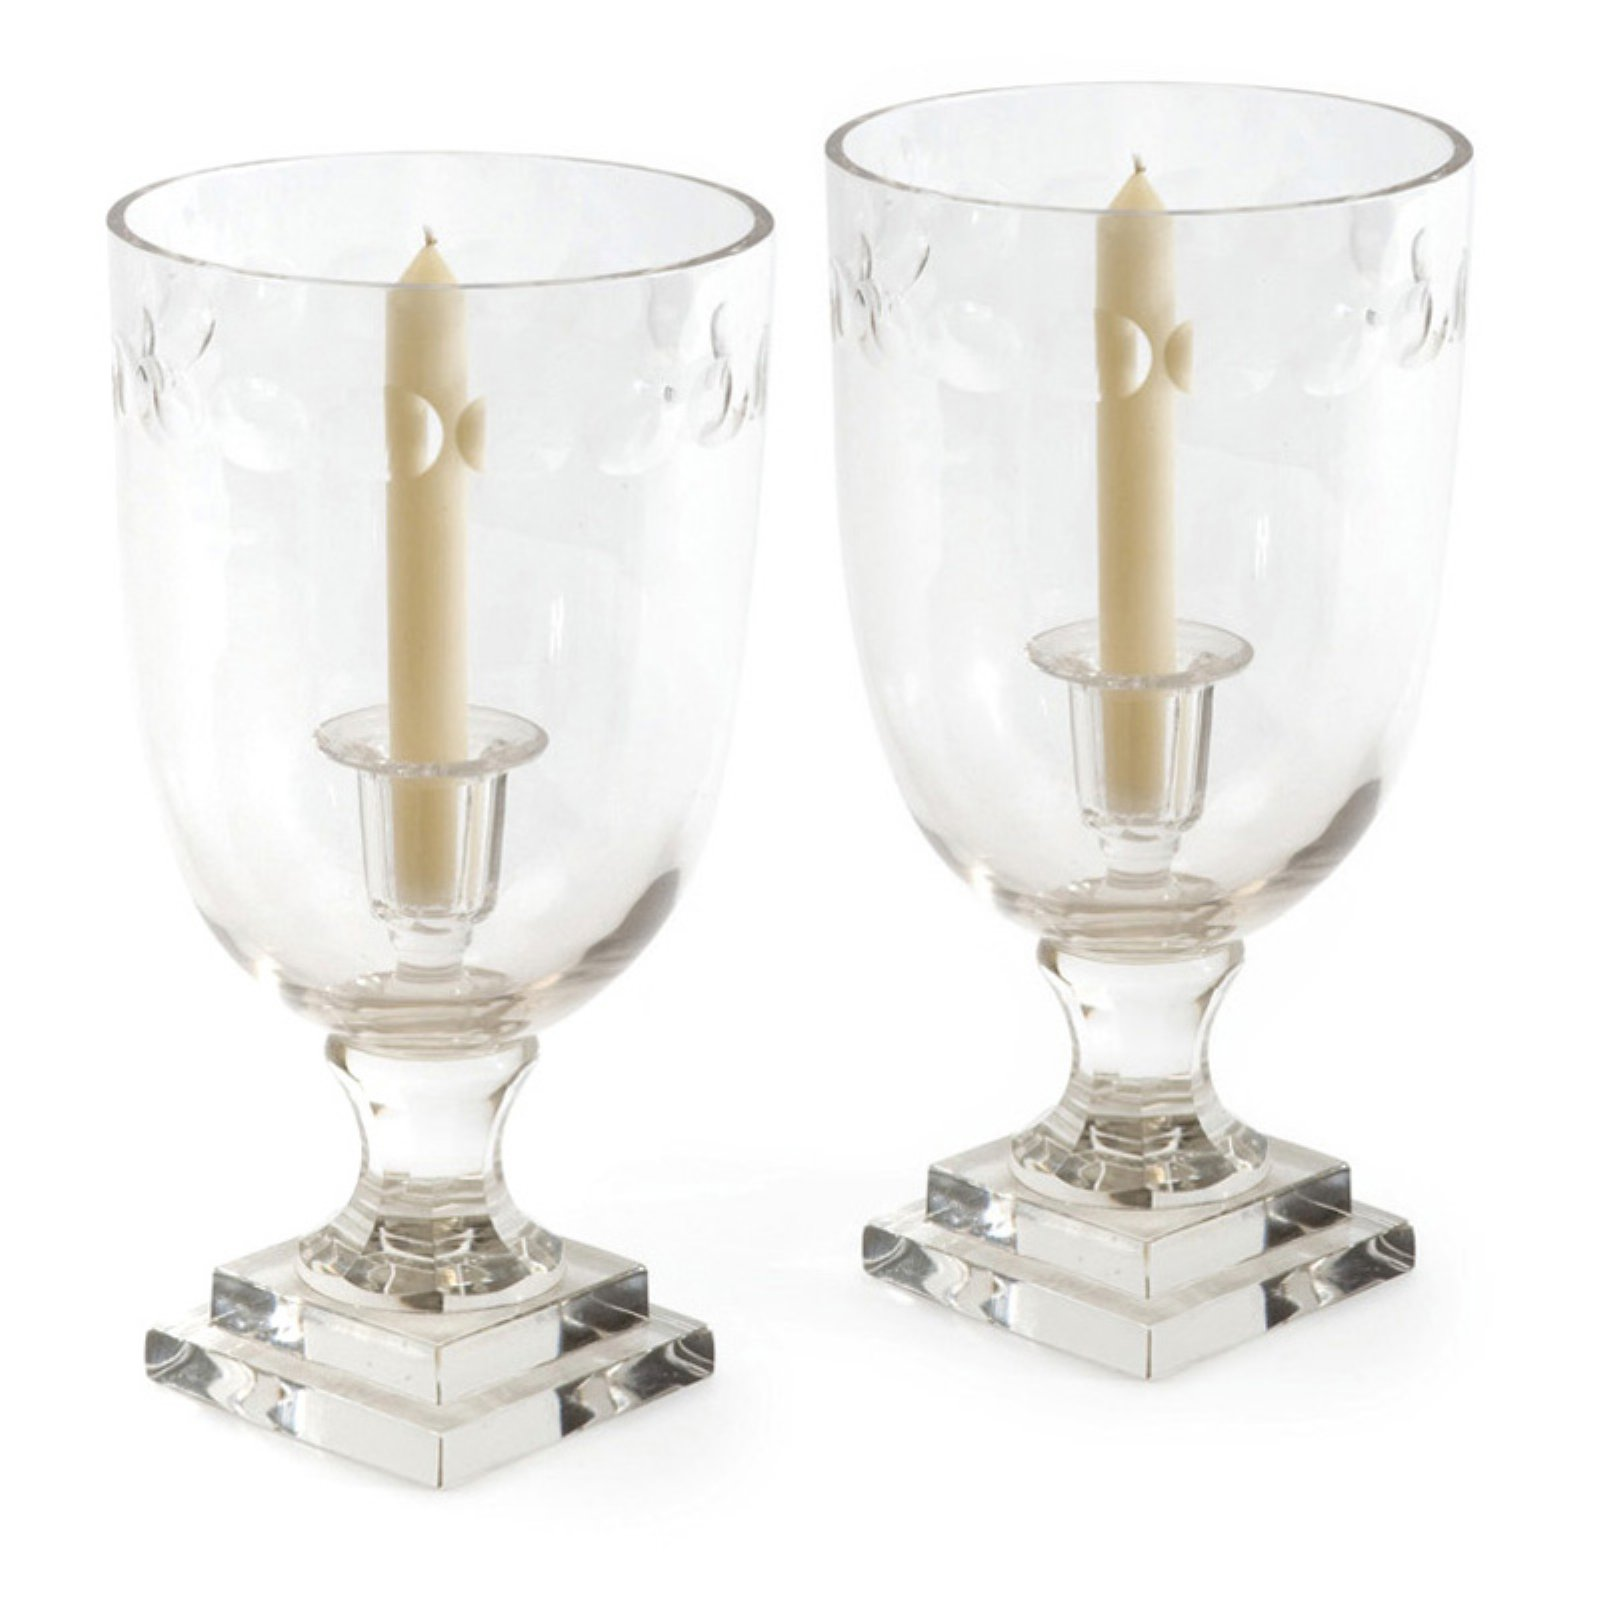 Hip Vintage Orbital Hurricane Candle Holder - Set of 2